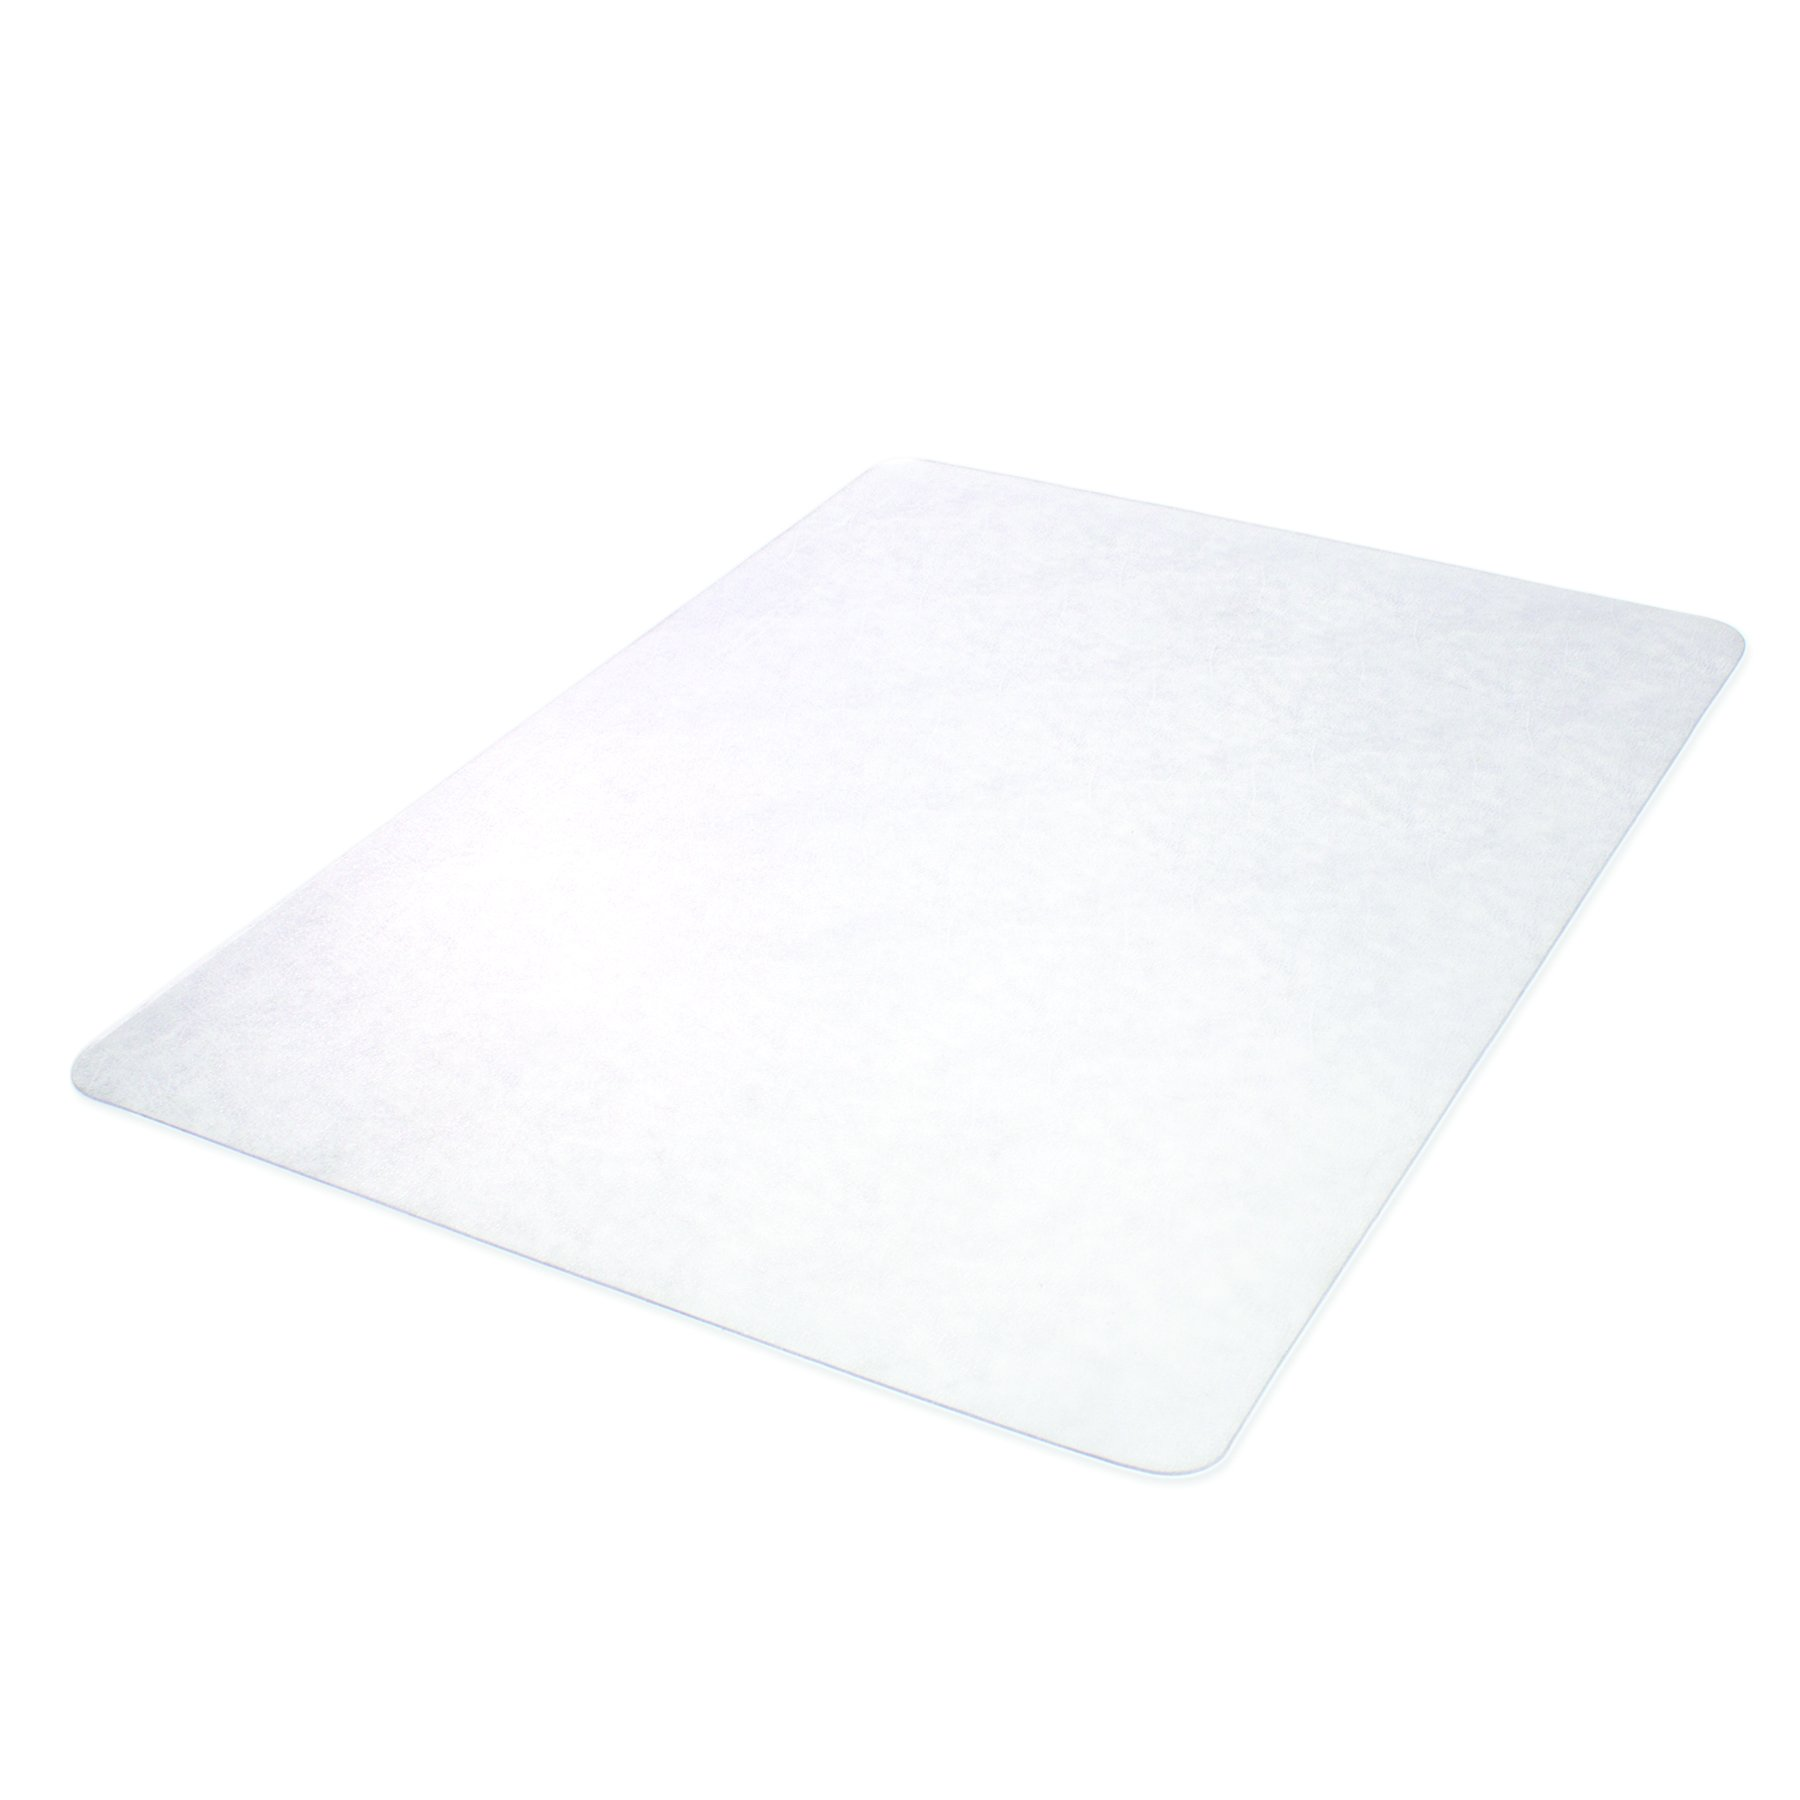 Deflecto SuperMat Clear Chair Mat, Hard Floor Use, Rectangle, Beveled Edge, 45 x 53 Inches (CM24243)